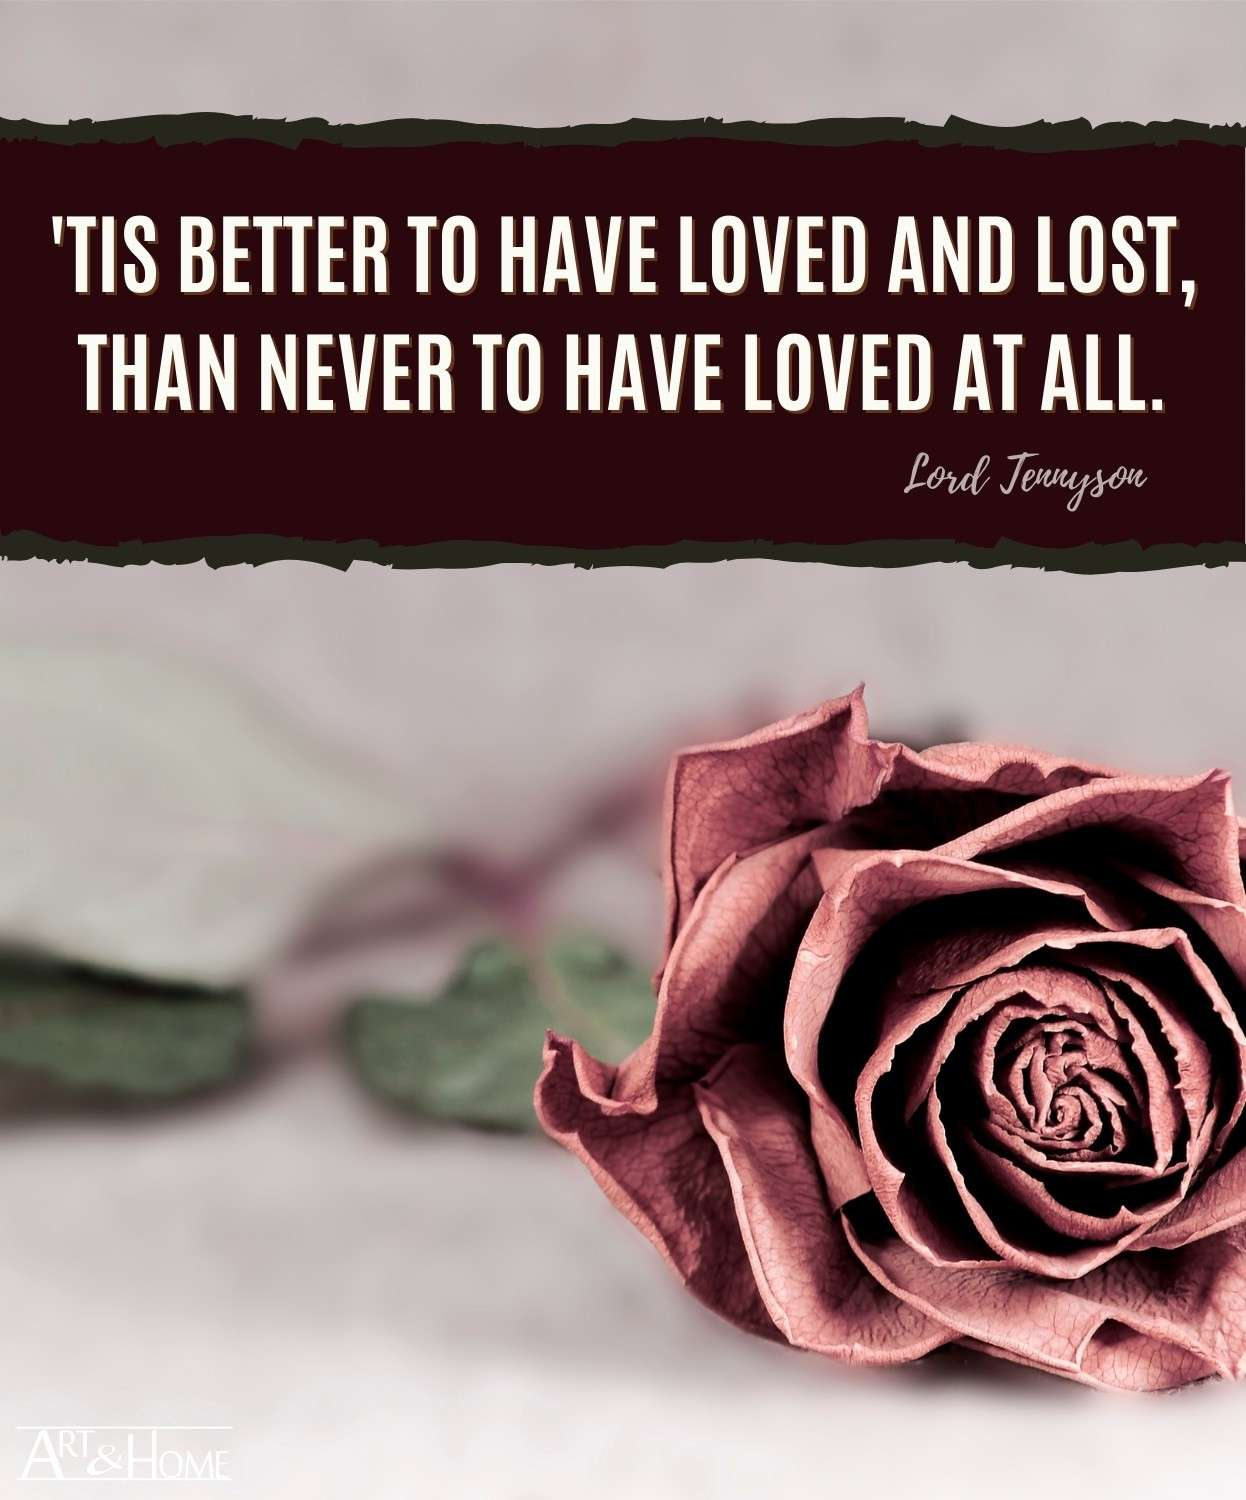 Lord Tennyson Loved and Lost Quote